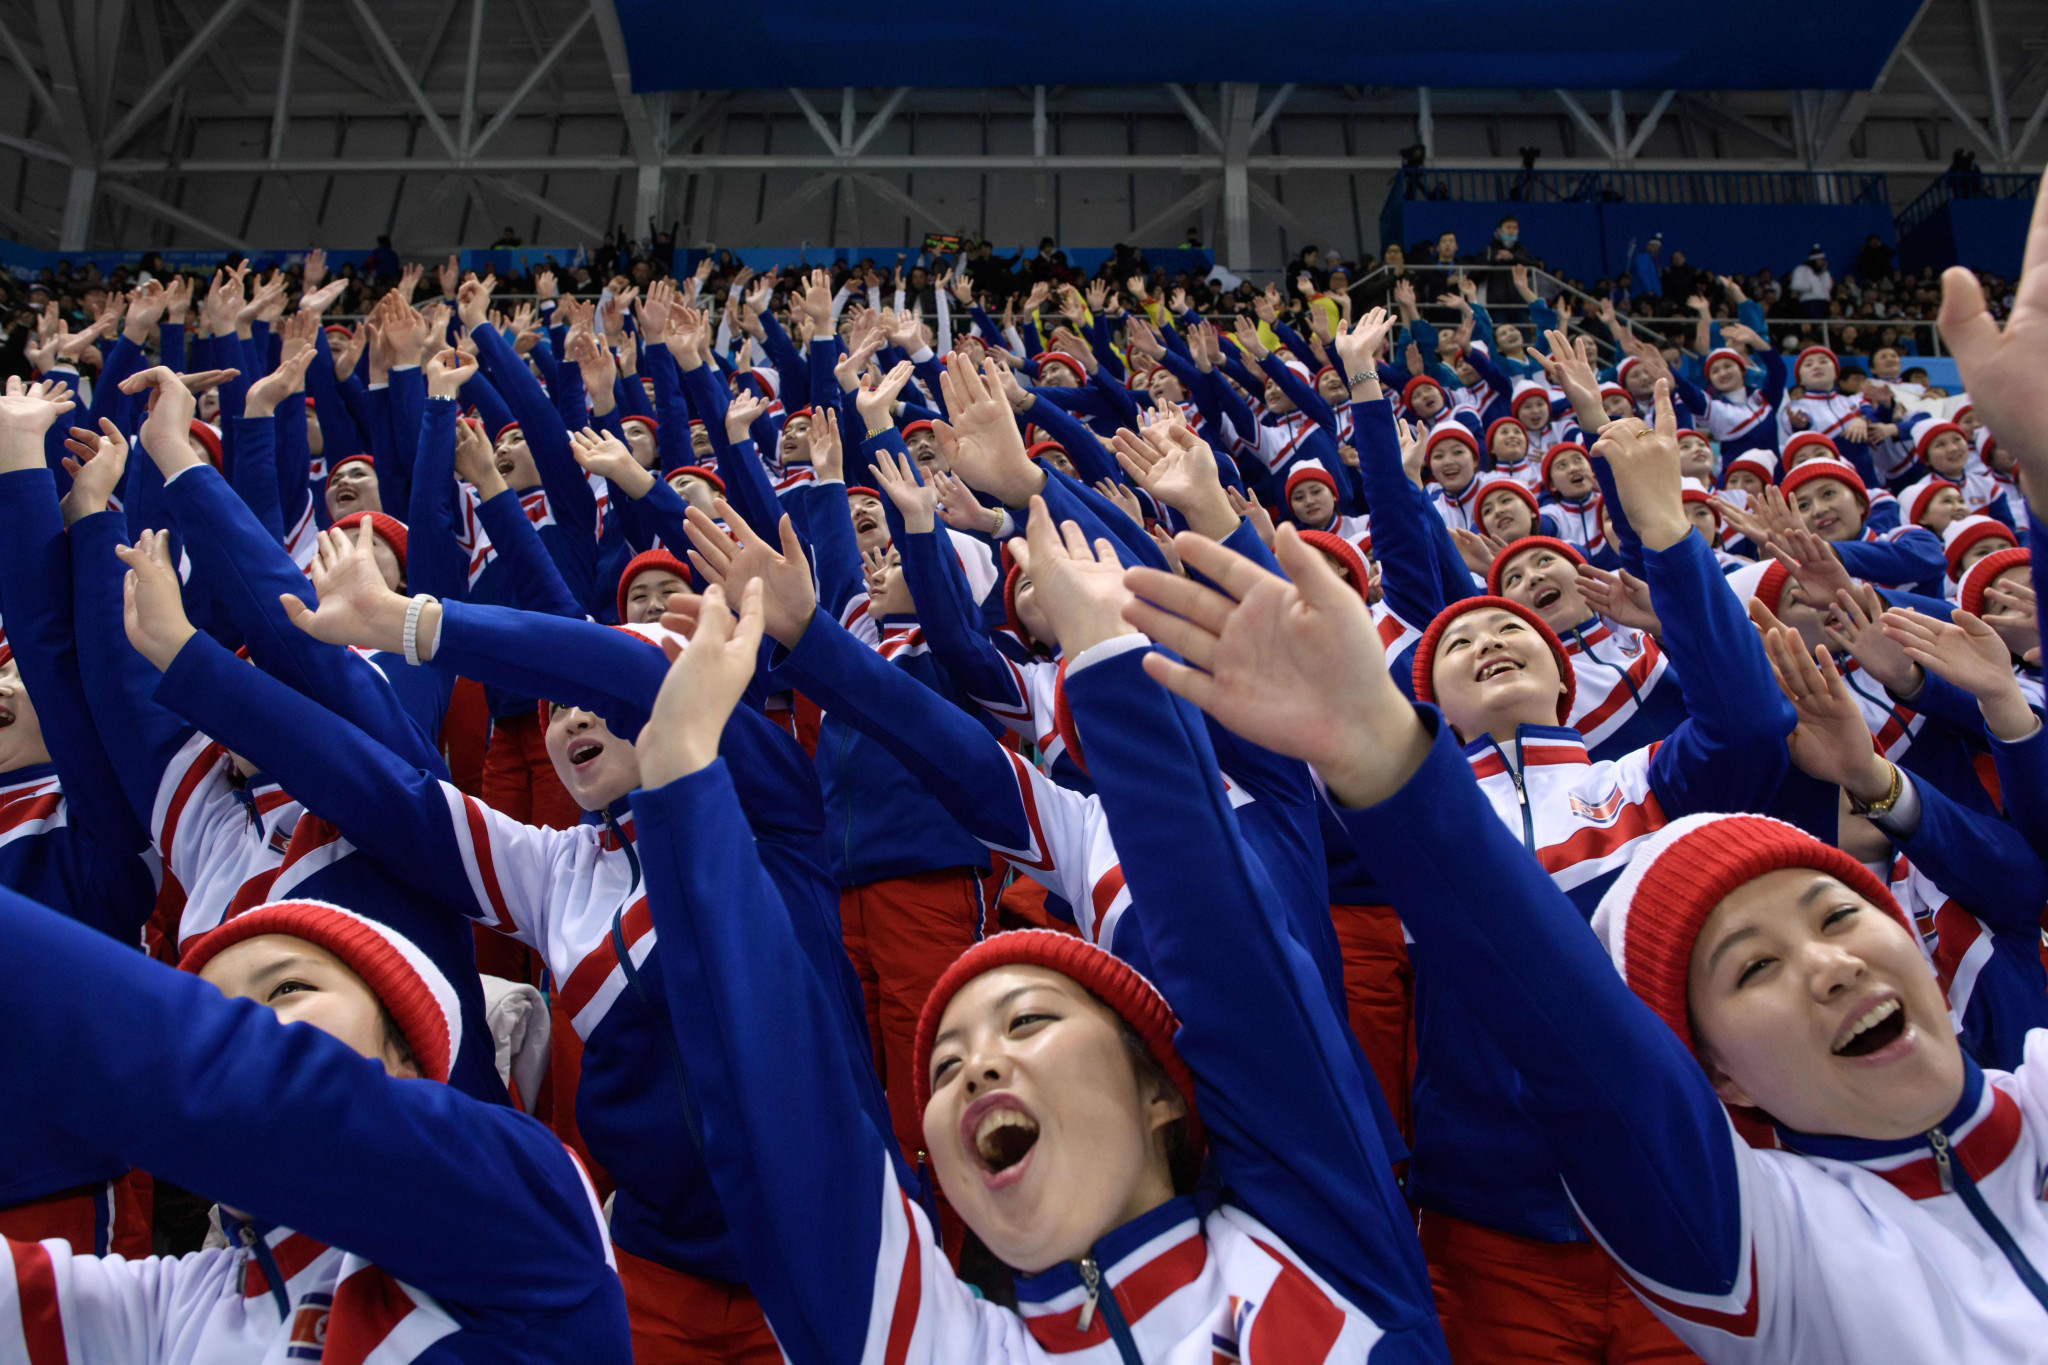 North Korean cheerleaders charmed, then concerned people on social media ©Getty Images